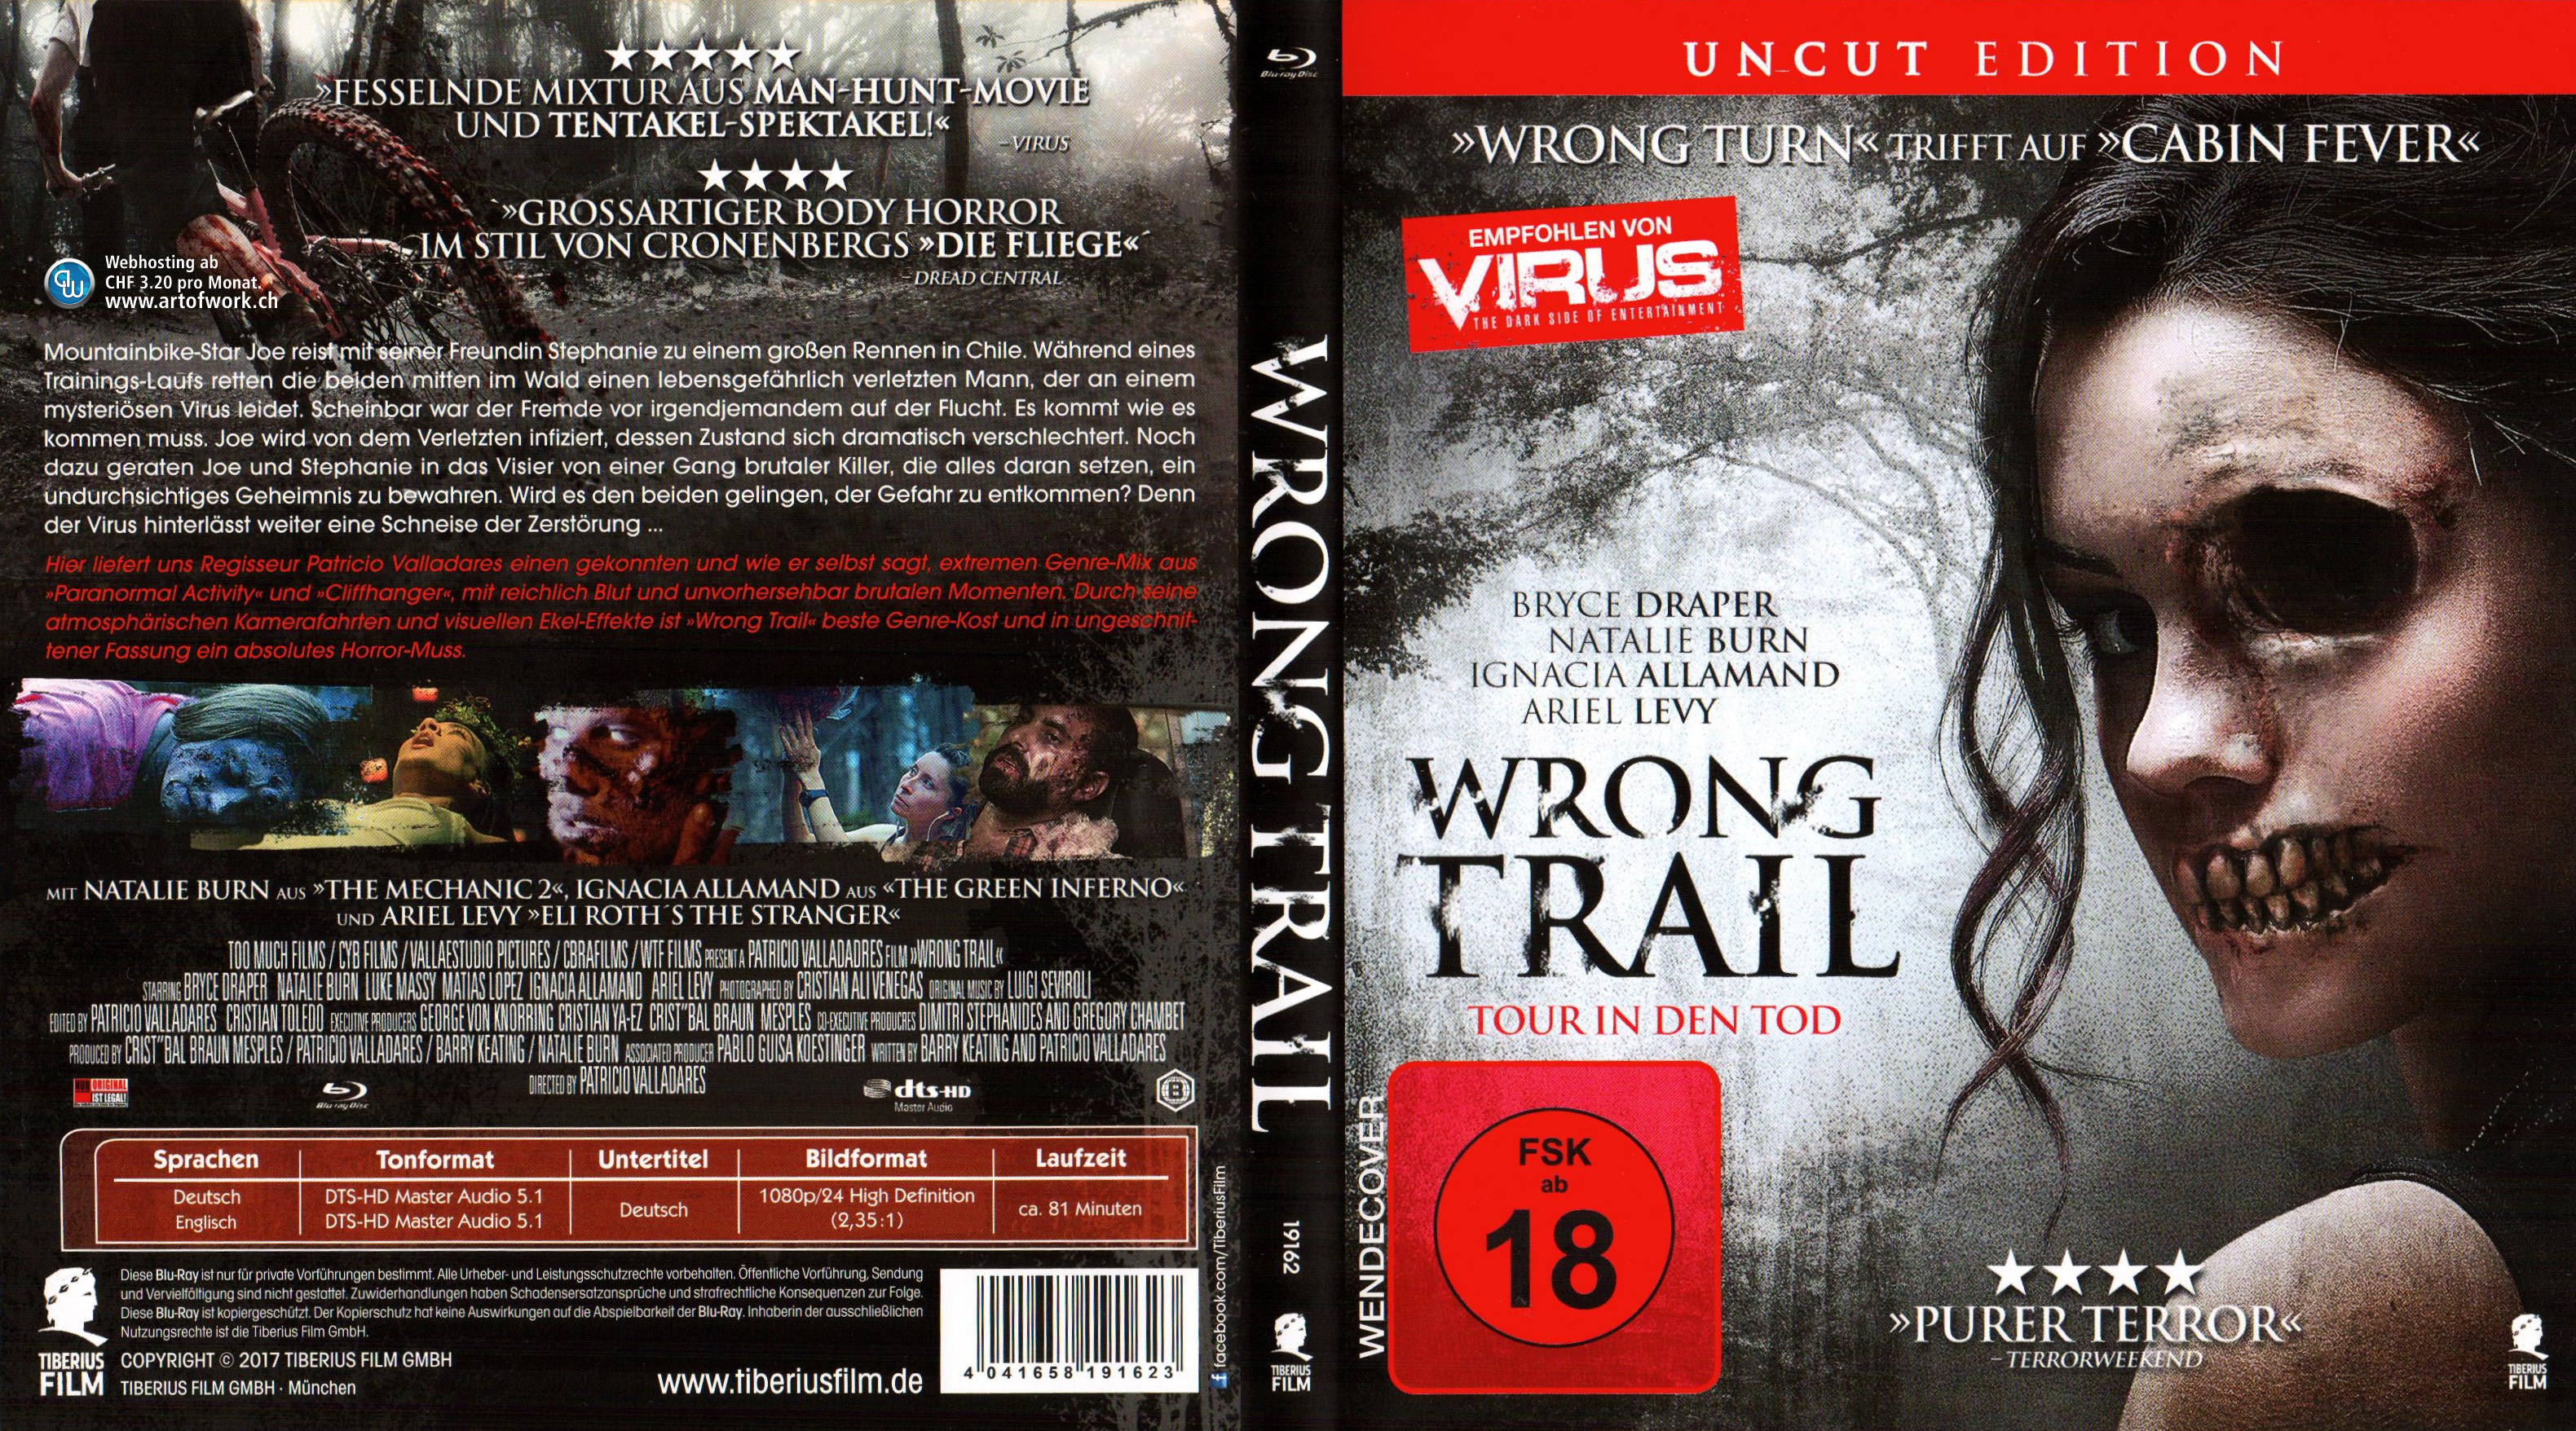 wrong trail - tour in den tod